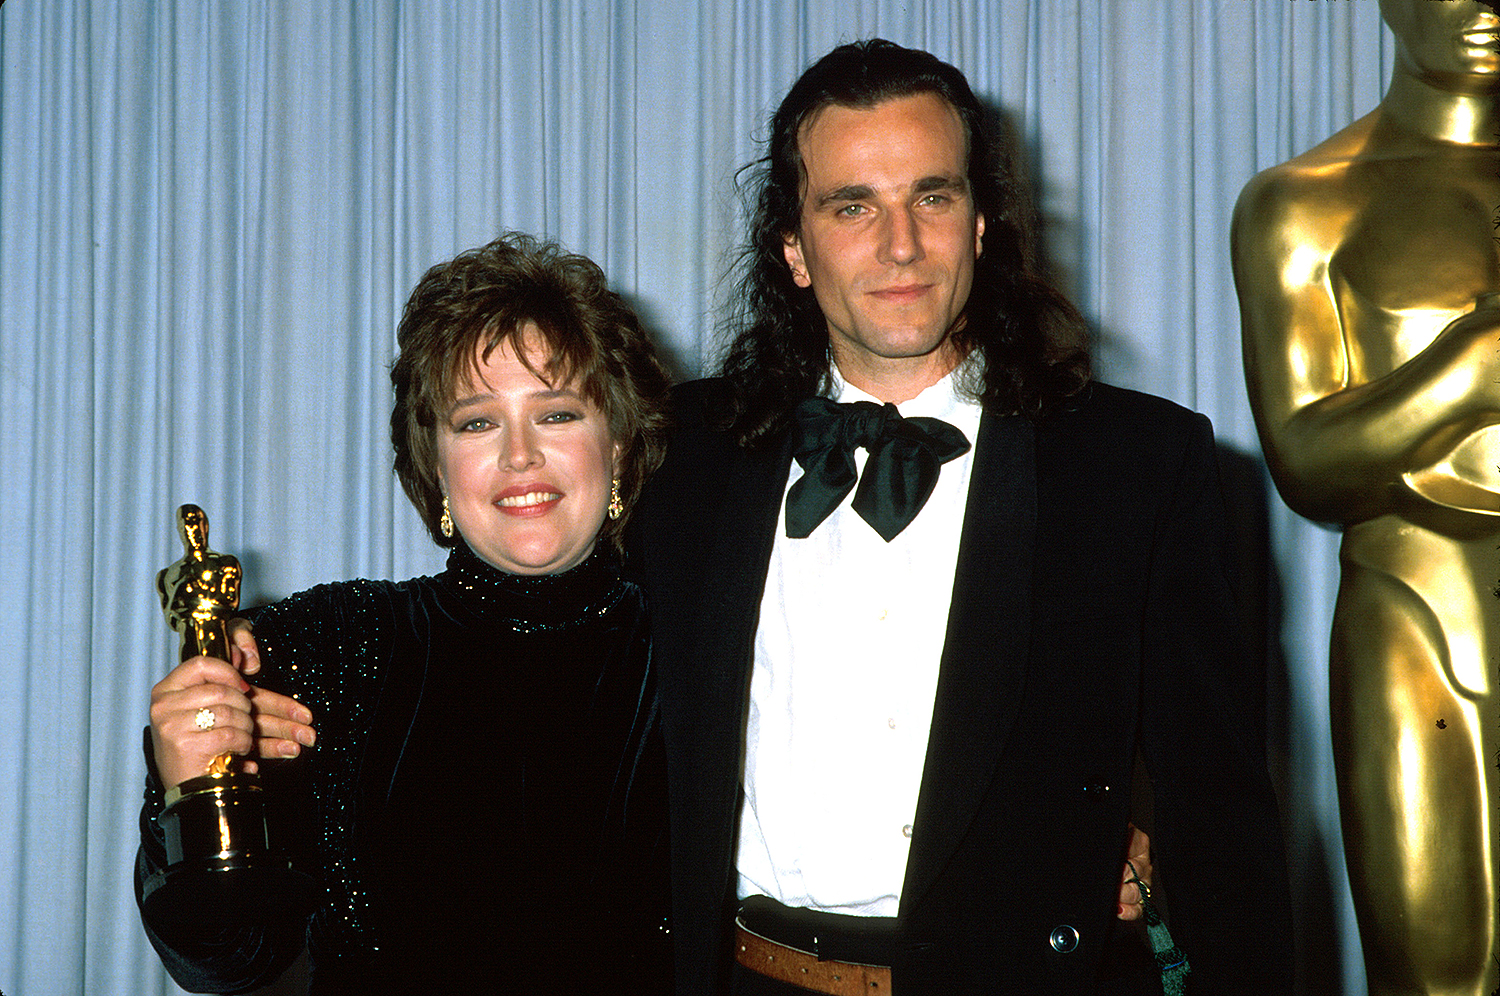 Kathy Bates and Daniel Day-Lewis